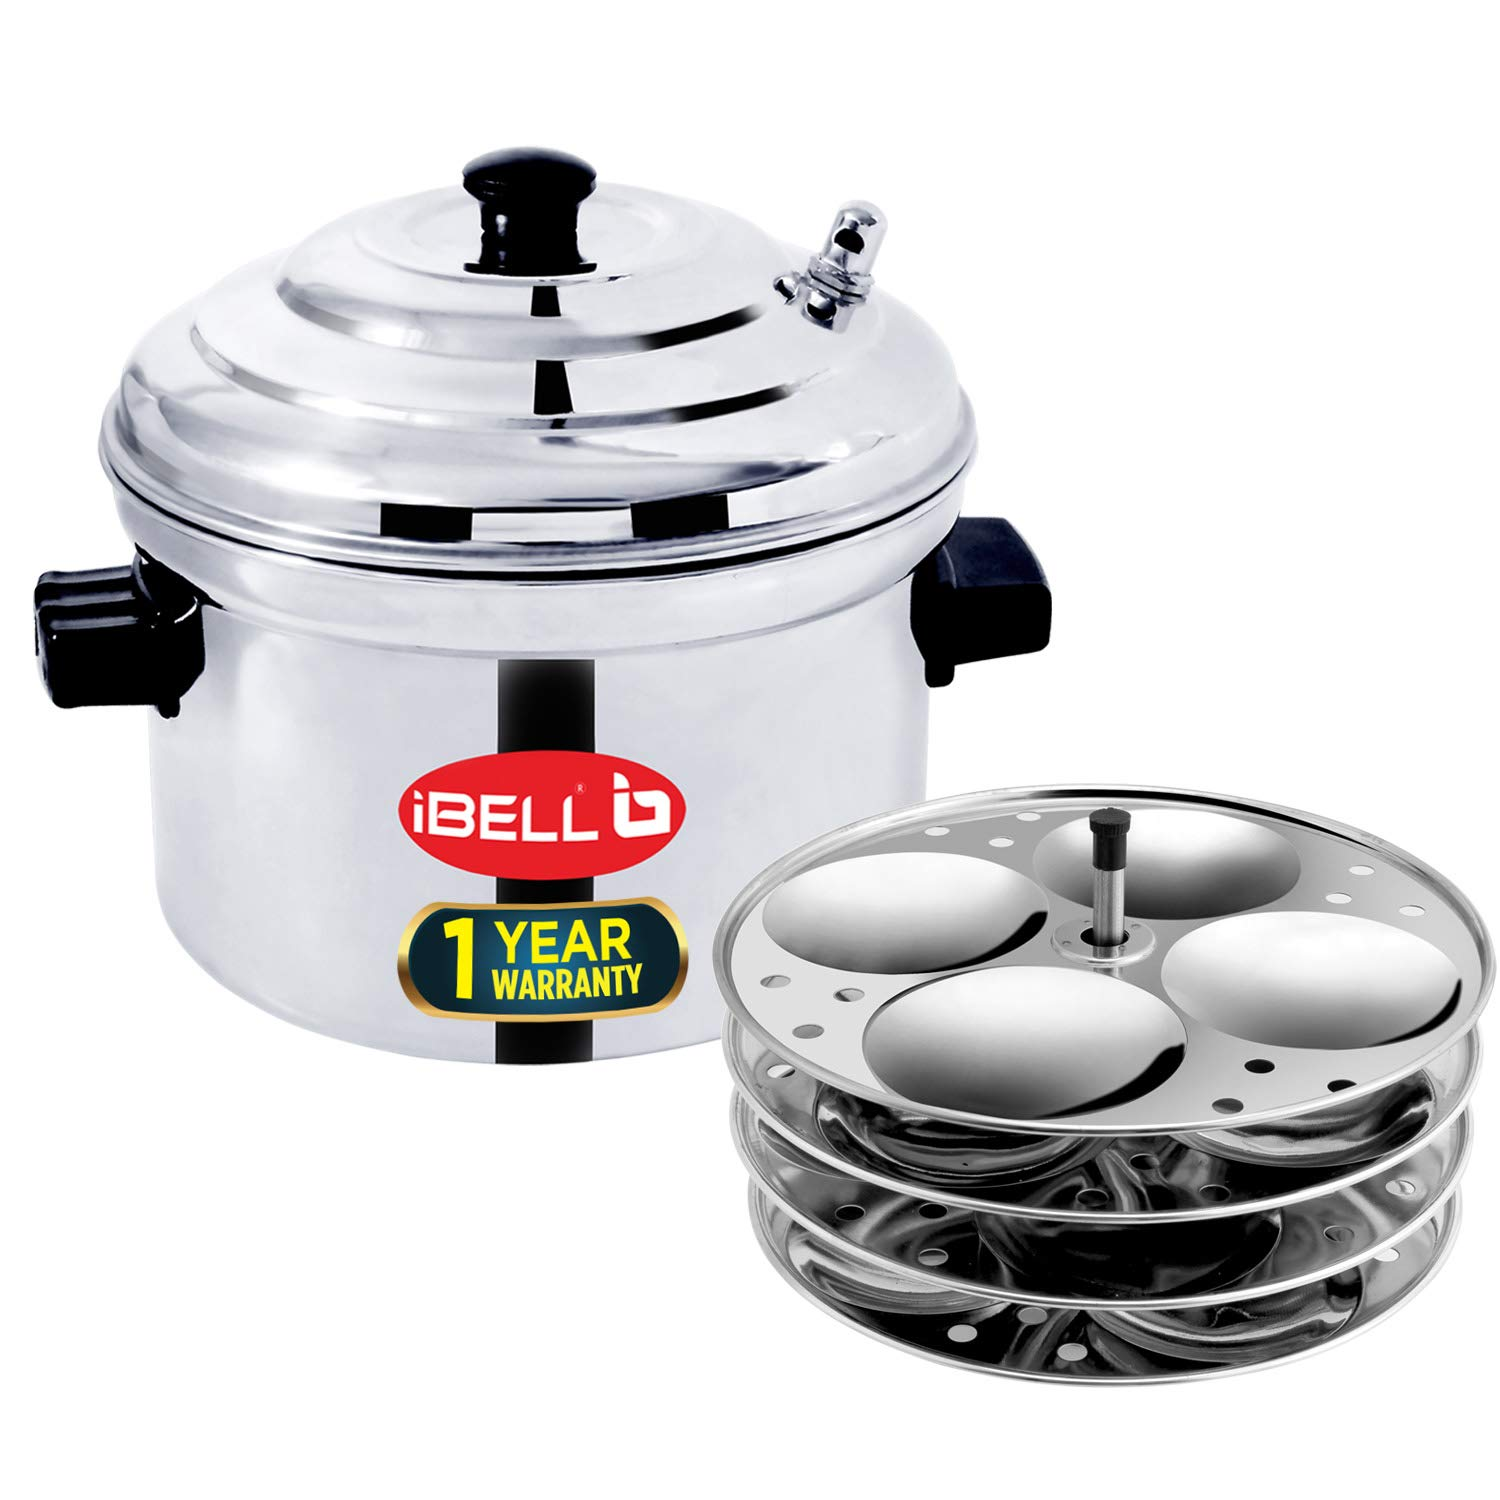 IBELL Stainless Steel Idly Cooker, Induction and Gas Stove Compatible Idli Maker (Silver; 16 Idlies) 4-Plates